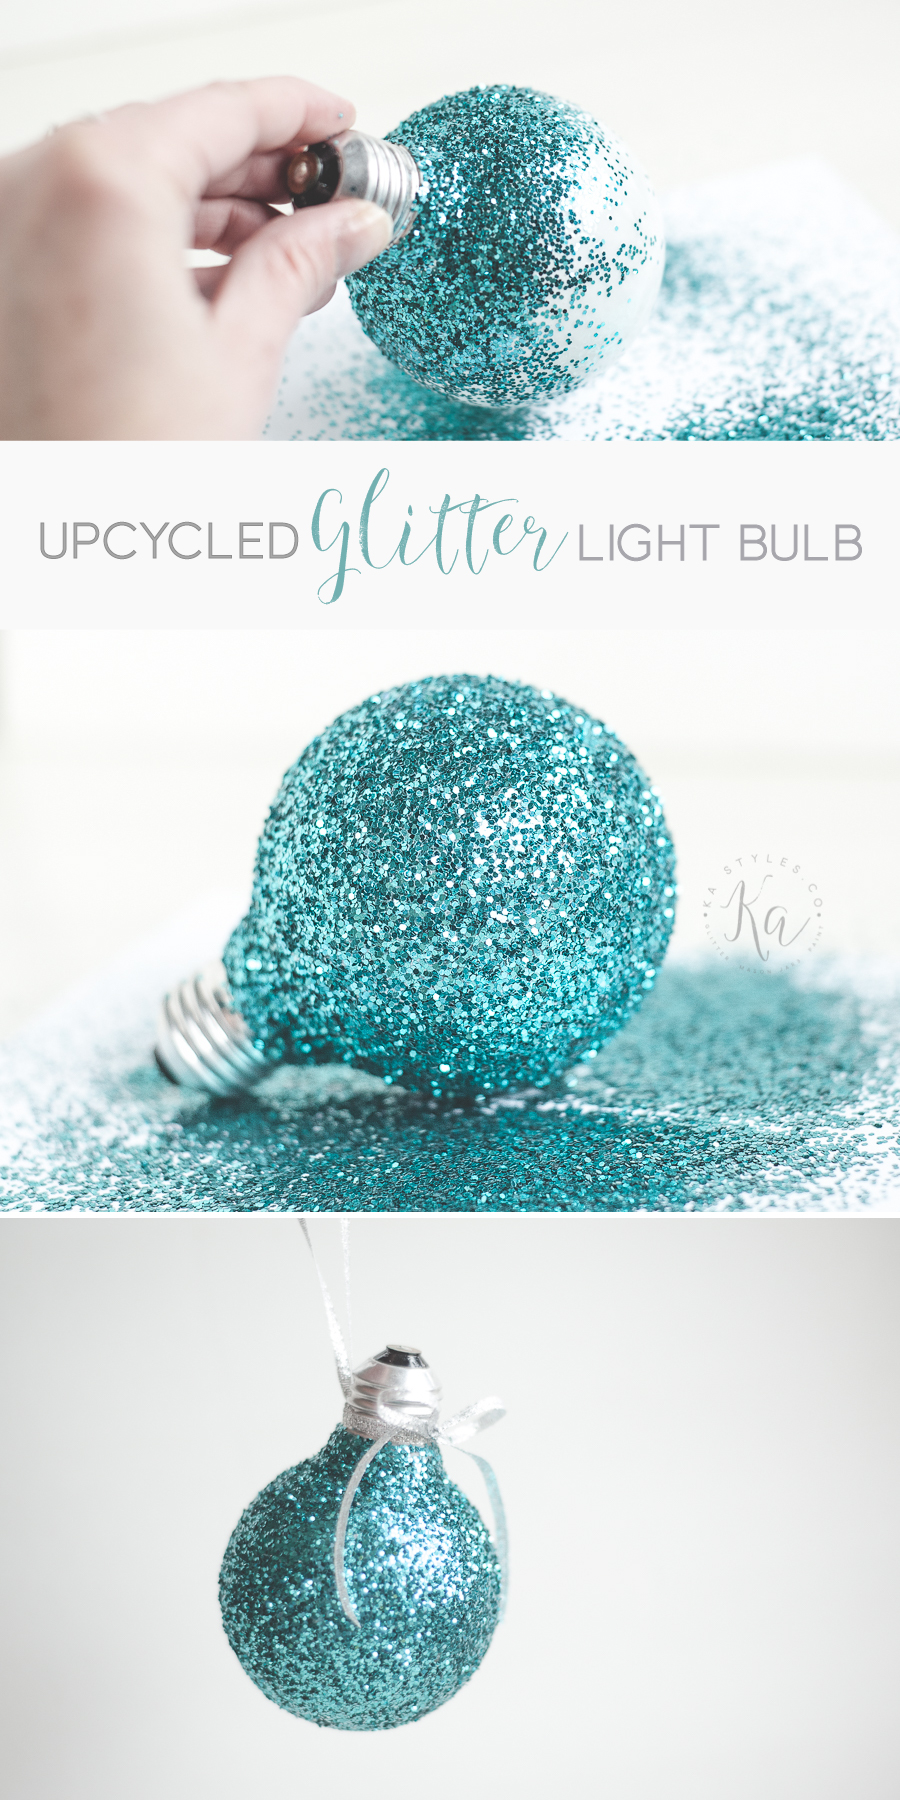 Upcycled glitter light bulb holiday ornament.